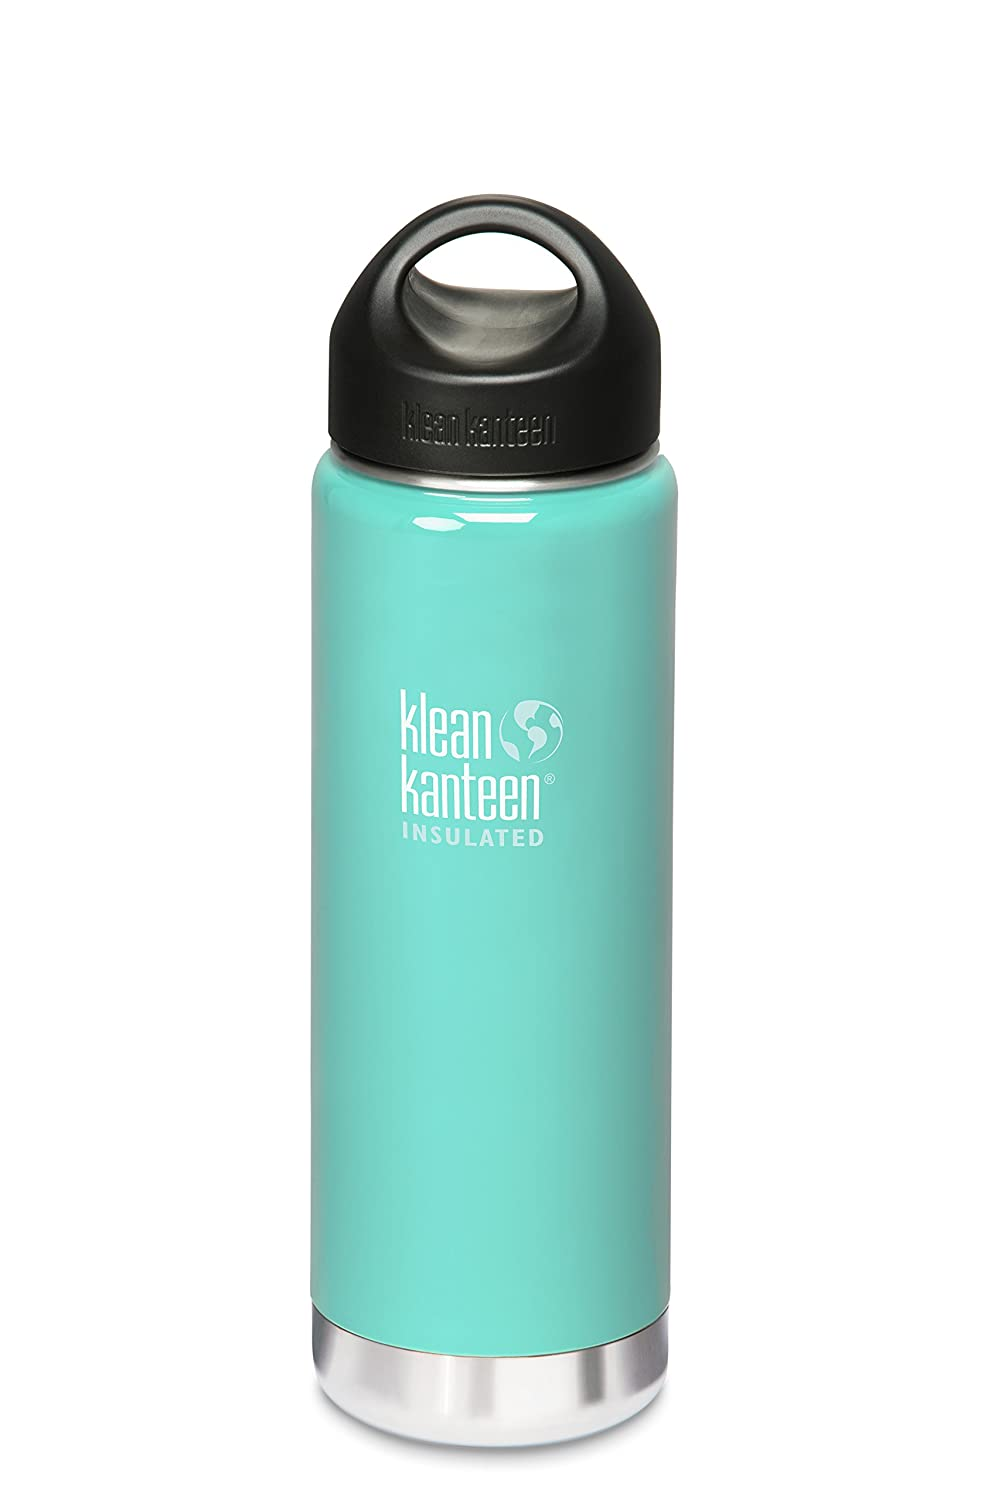 Klean Kanteen 592ml - Double wall Vacuum Insulated bottle - Glacial Glass